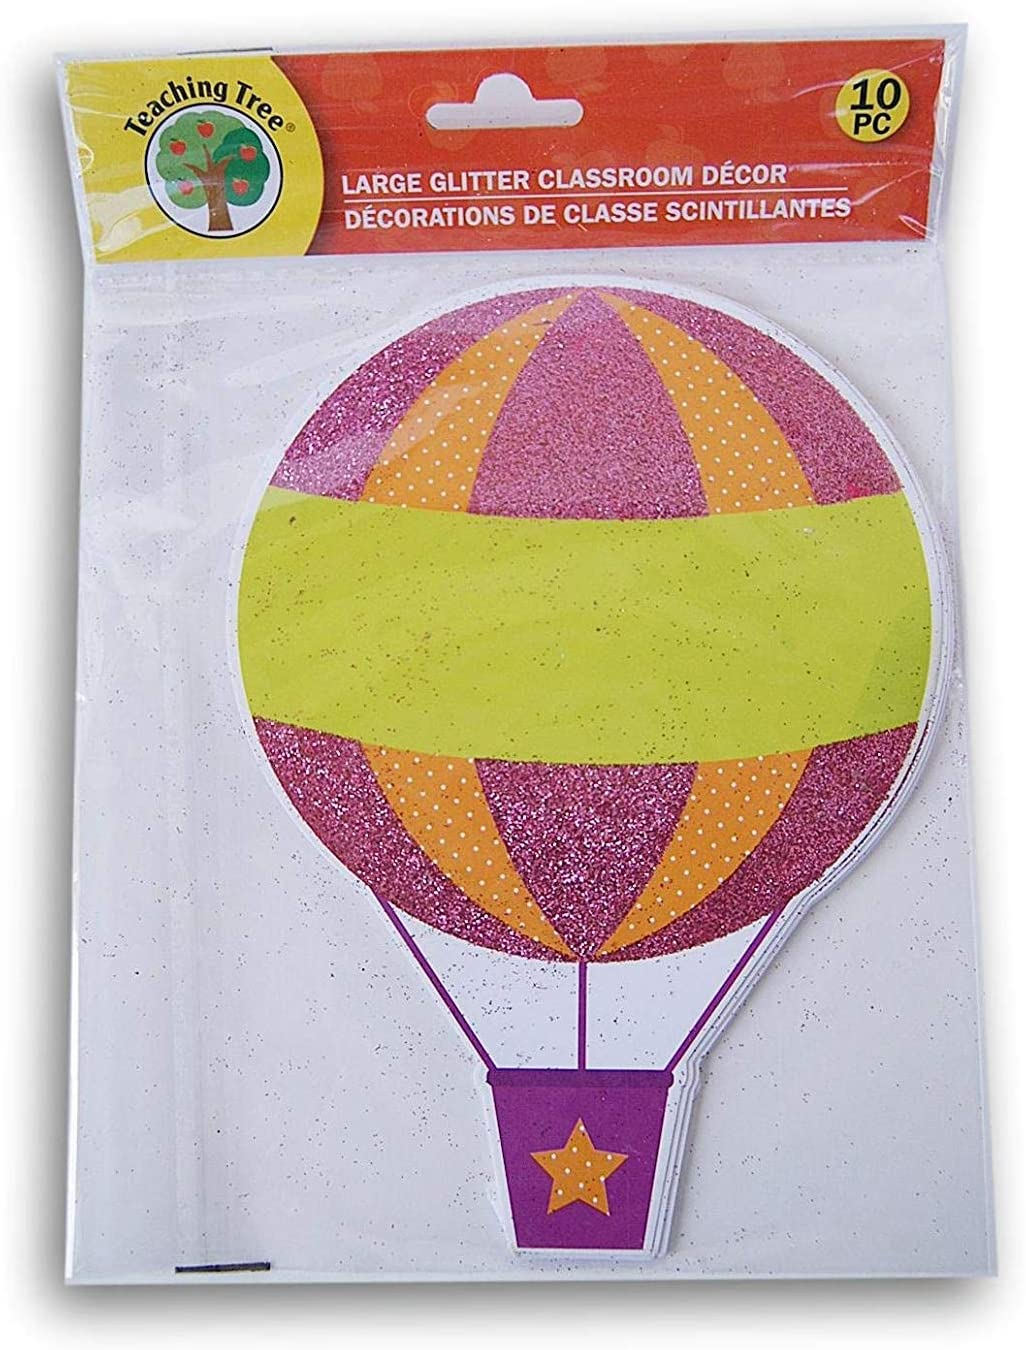 Hot Air Balloon Classroom Decor Glitter Paper Cut-Outs - 10 Count